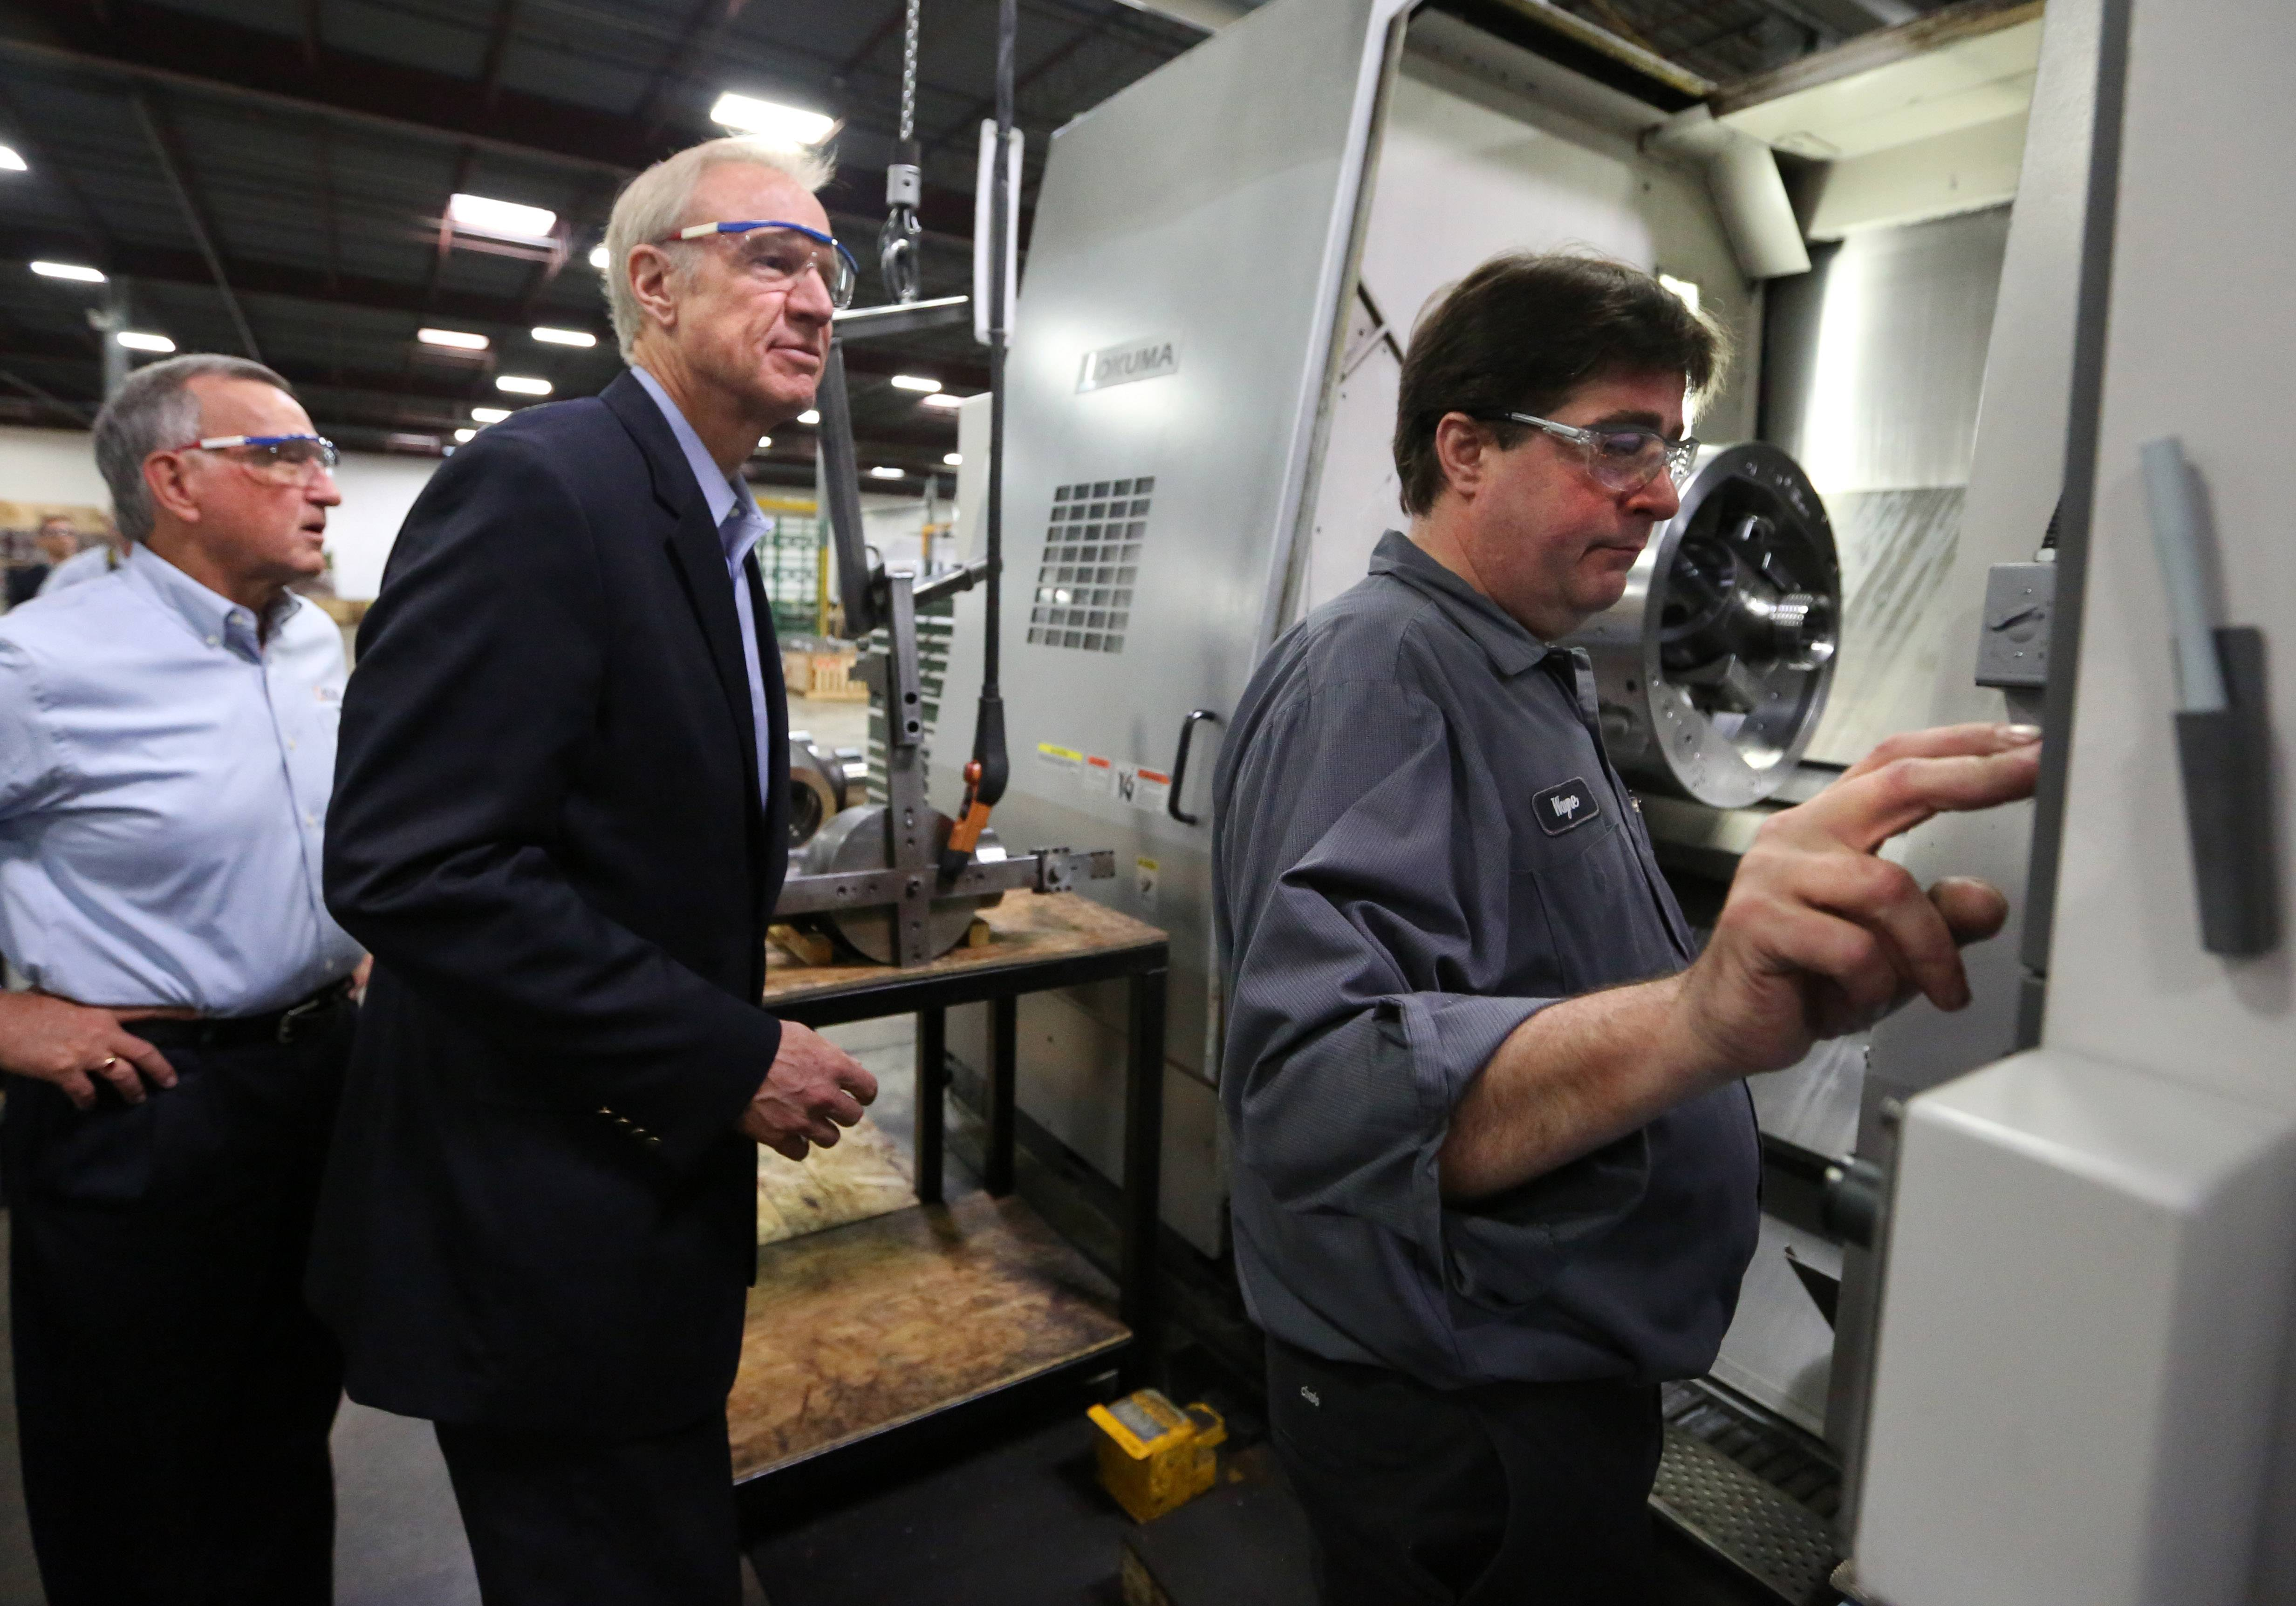 Republican gubernatorial candidate Bruce Rauner, center, watches machinist Wayne Follman, right, adjust the controls on his machine. On Tuesday, Rauner was touring ACME Industries with Warren Young, ACME Industries chairman, left.